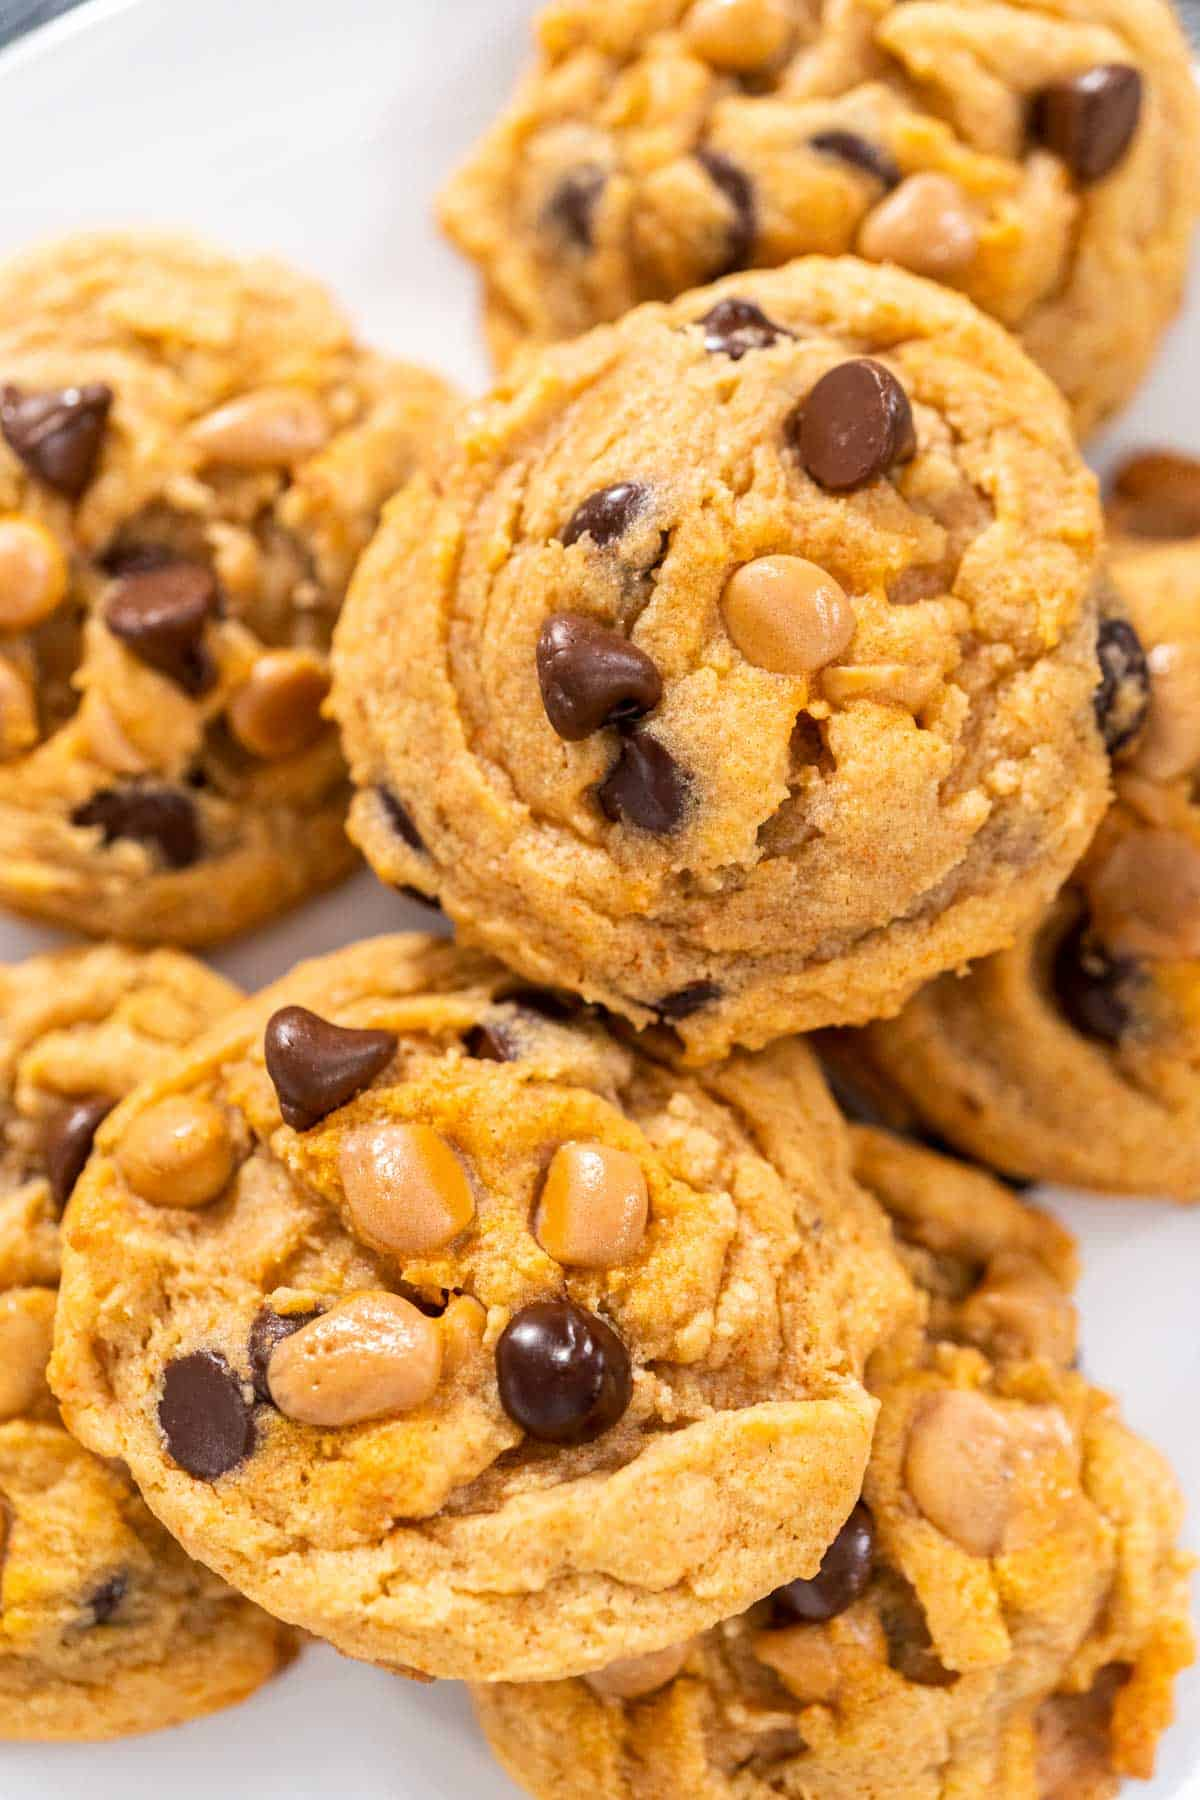 A close up shot of a plate of Chocolate chip butterscotch cookie.